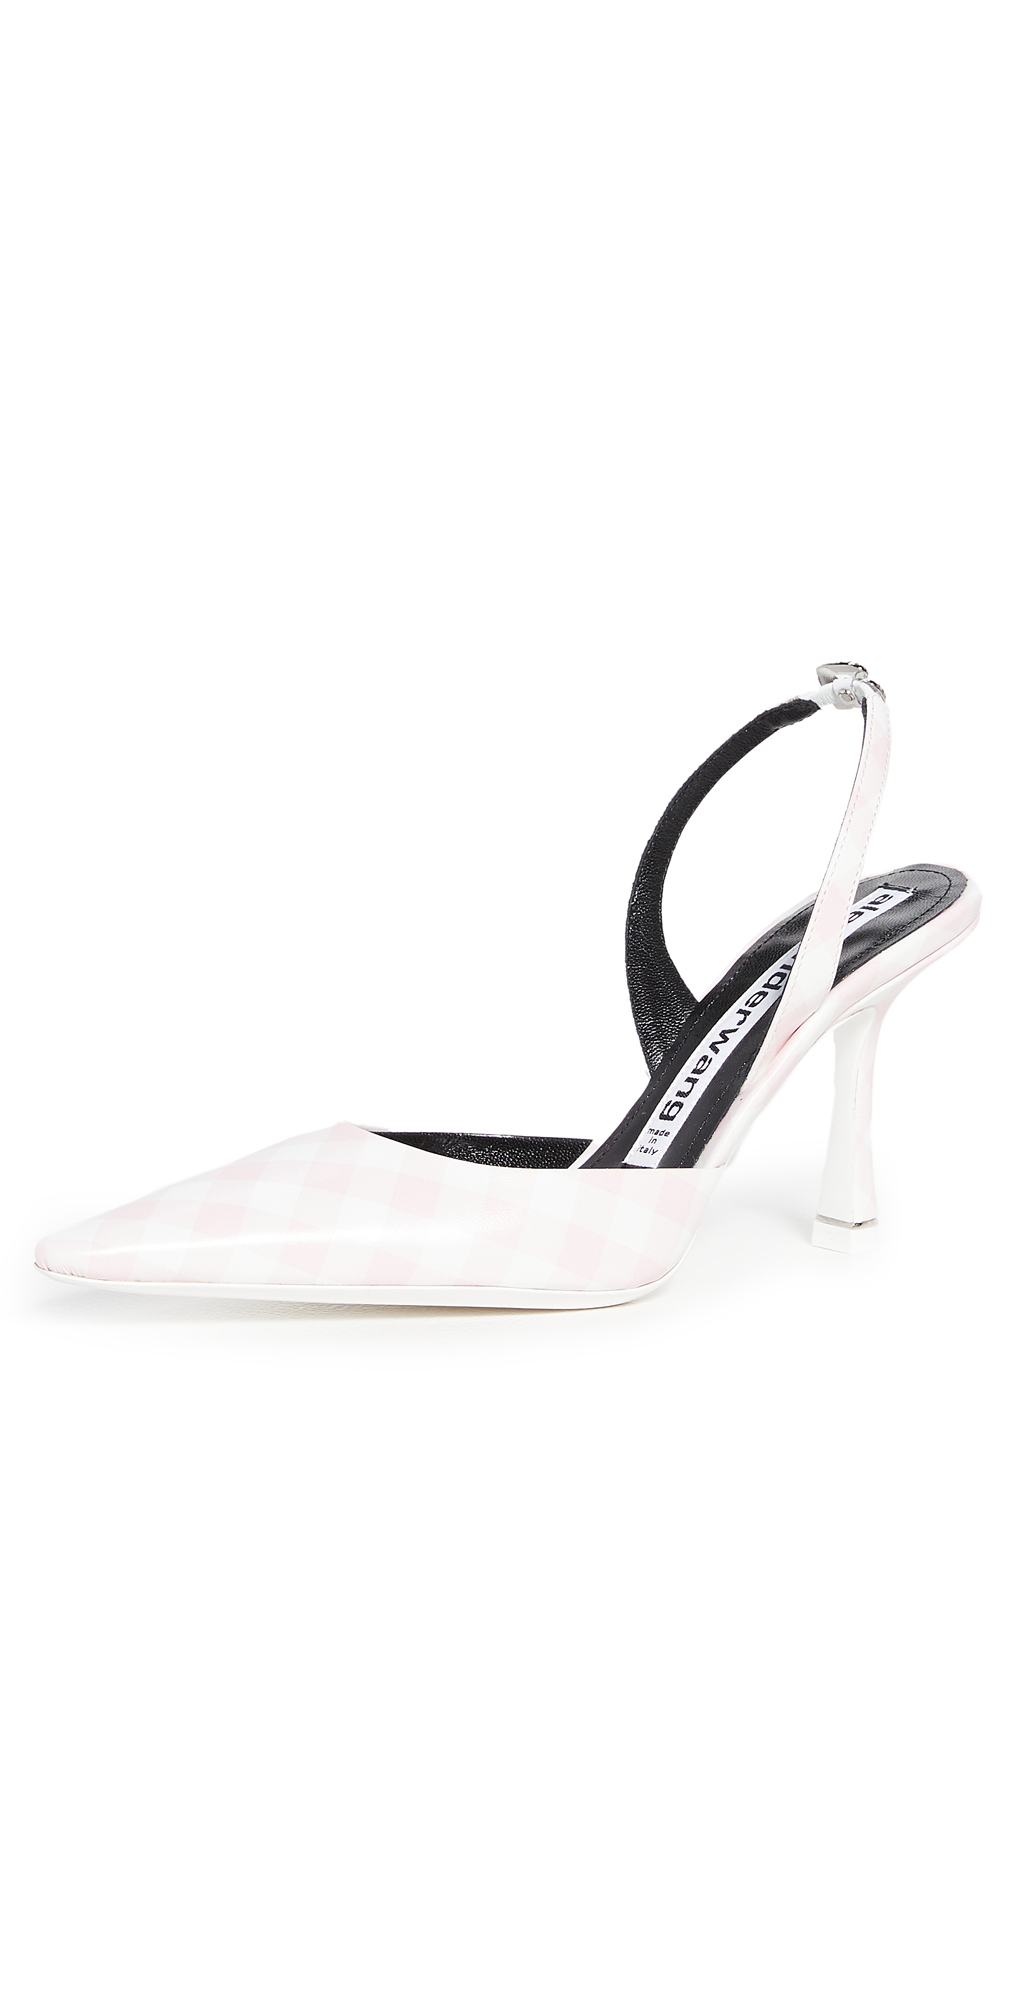 Alexander Wang Grace 85 Slingback Pumps